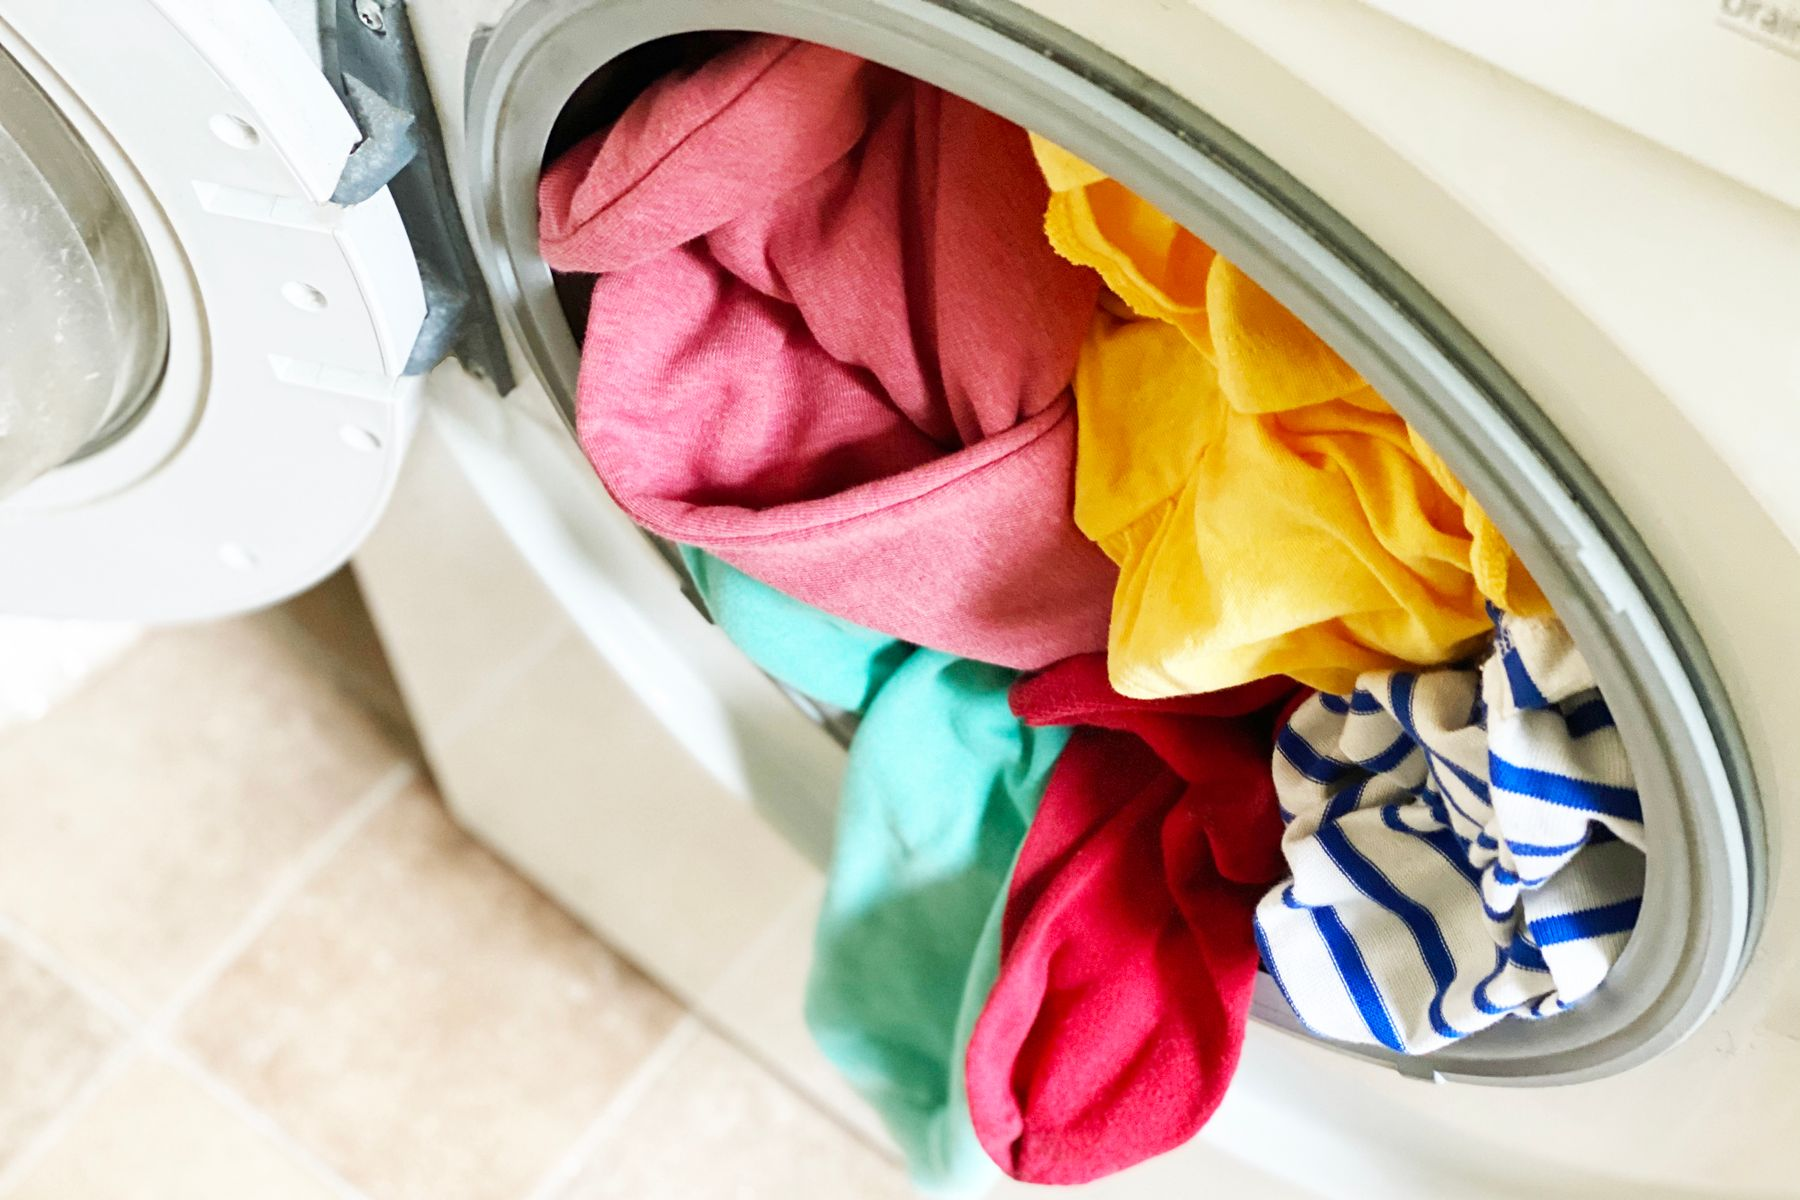 A washing machine with colourful clothing spilling out of it